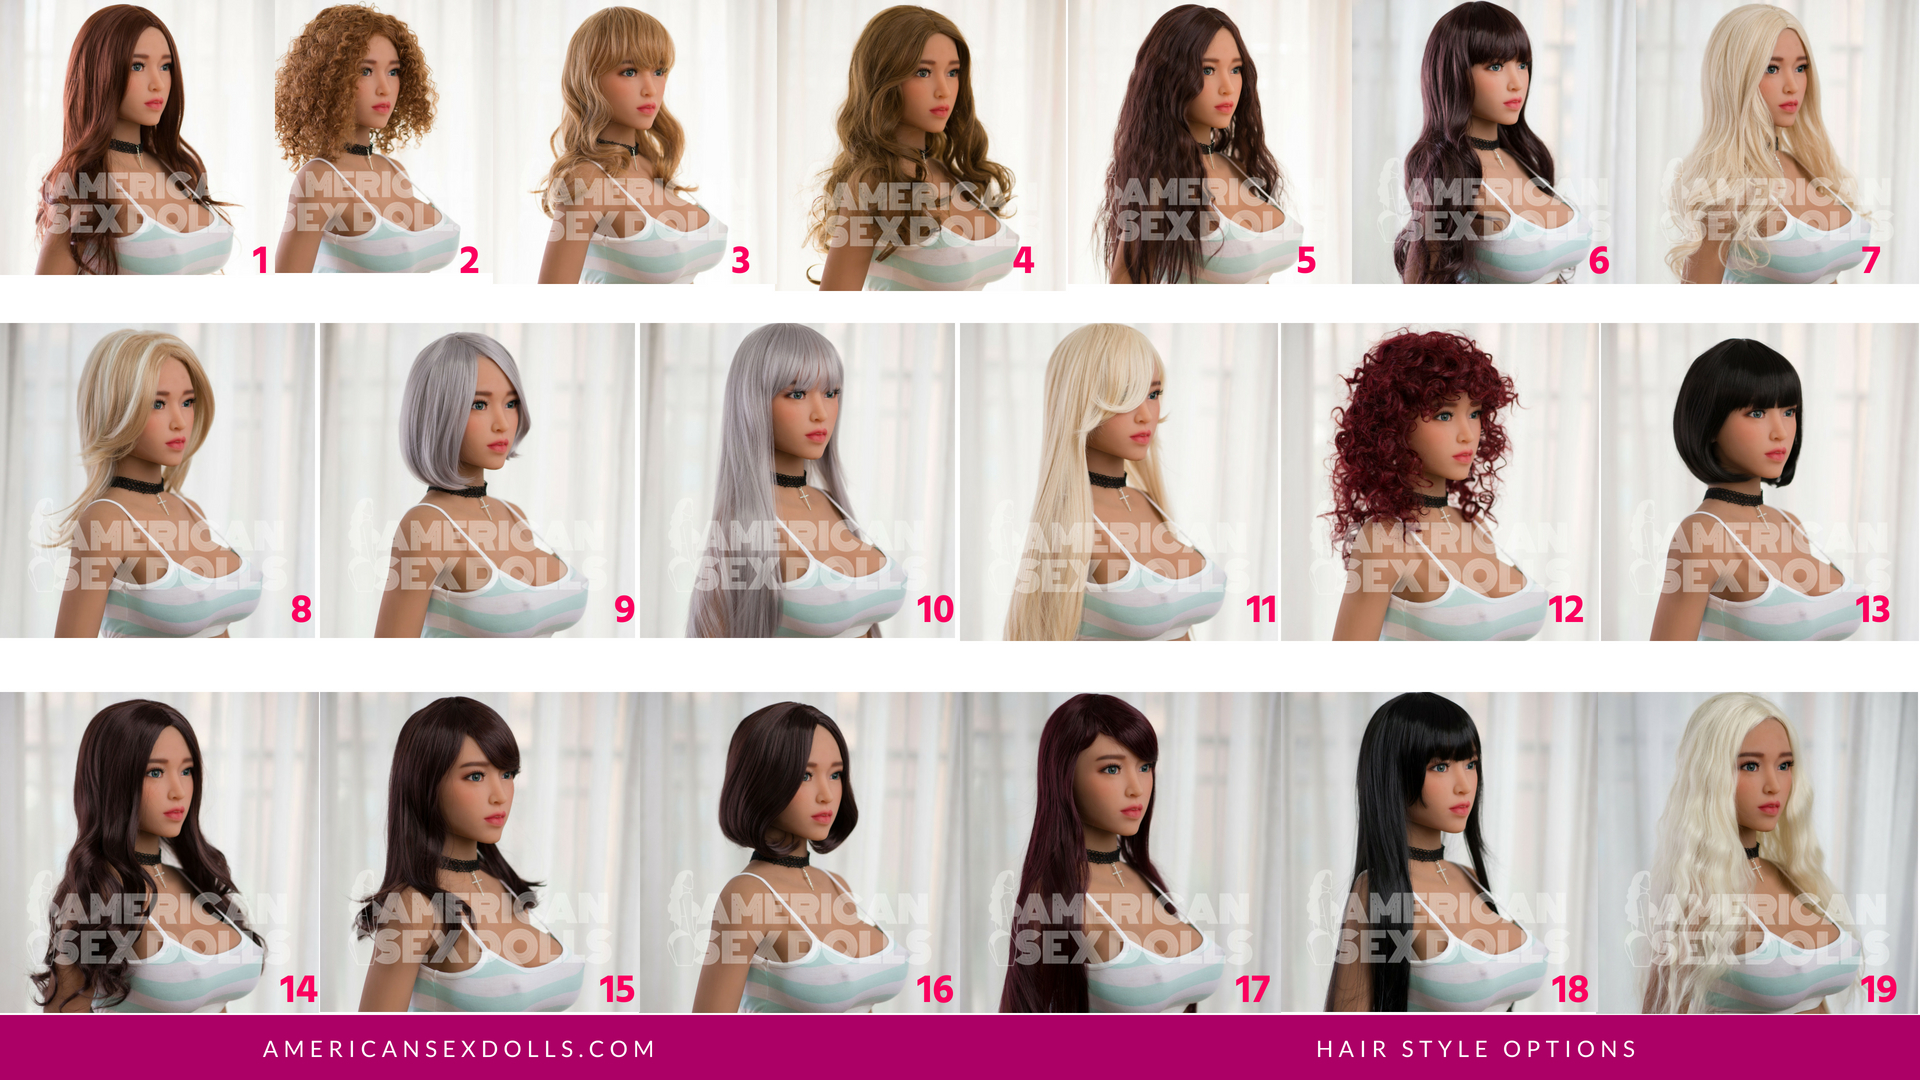 You can select your sex doll hair style after you add product to cart